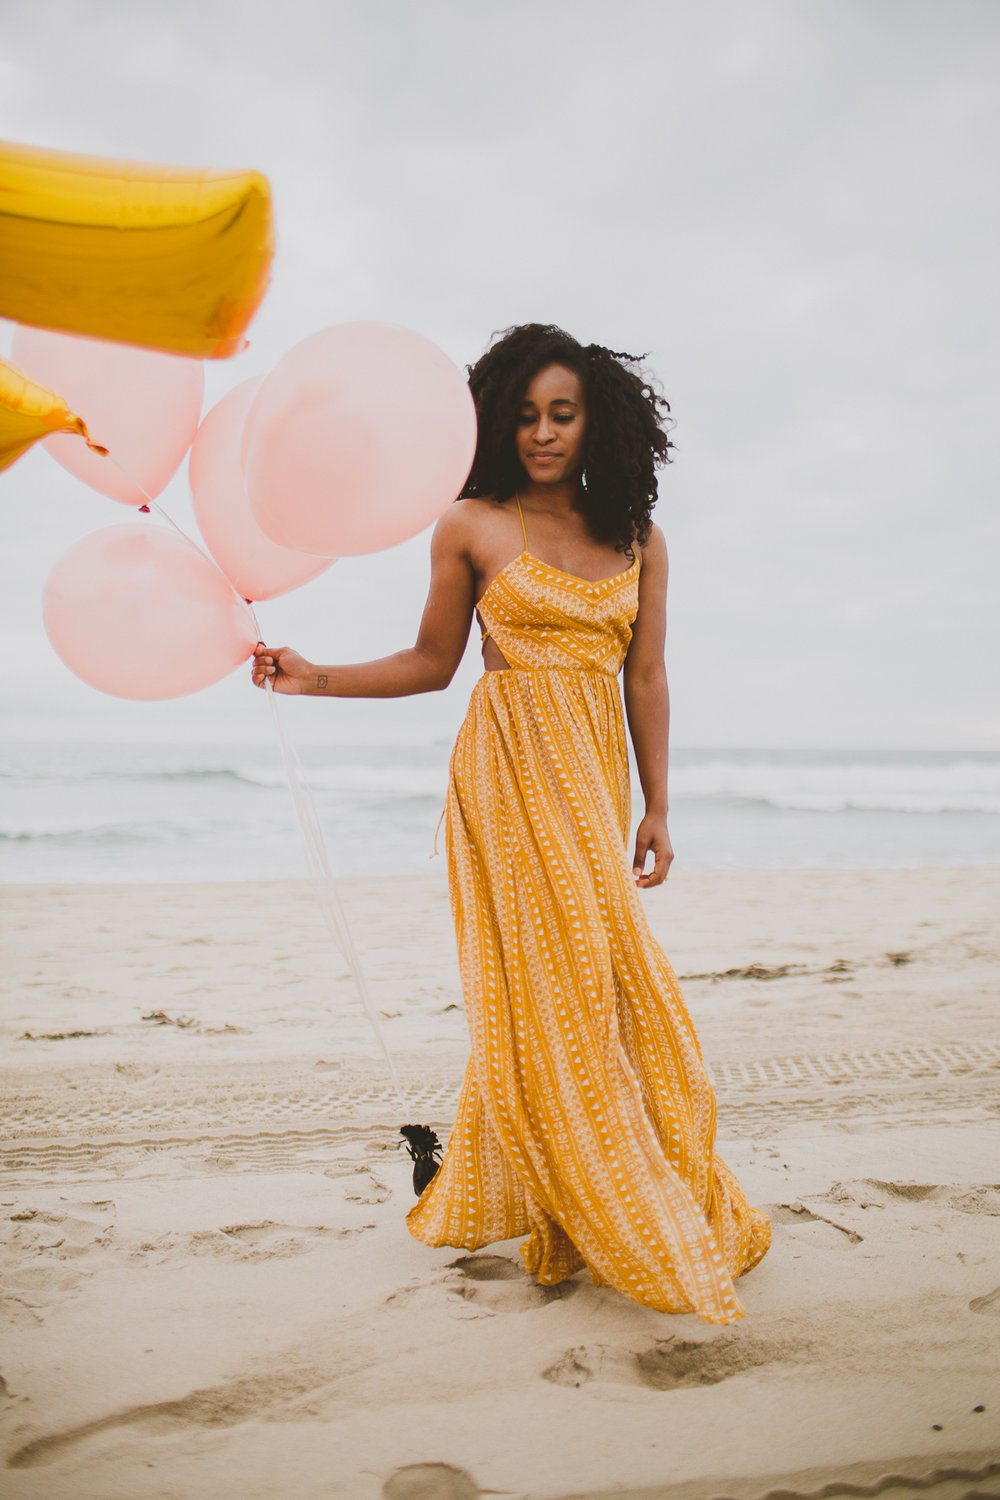 manhattan-beach-yellow-maxi-birthday-shoot-kelley-raye-los-angeles-atlanta-branding-photographer-6.jpg